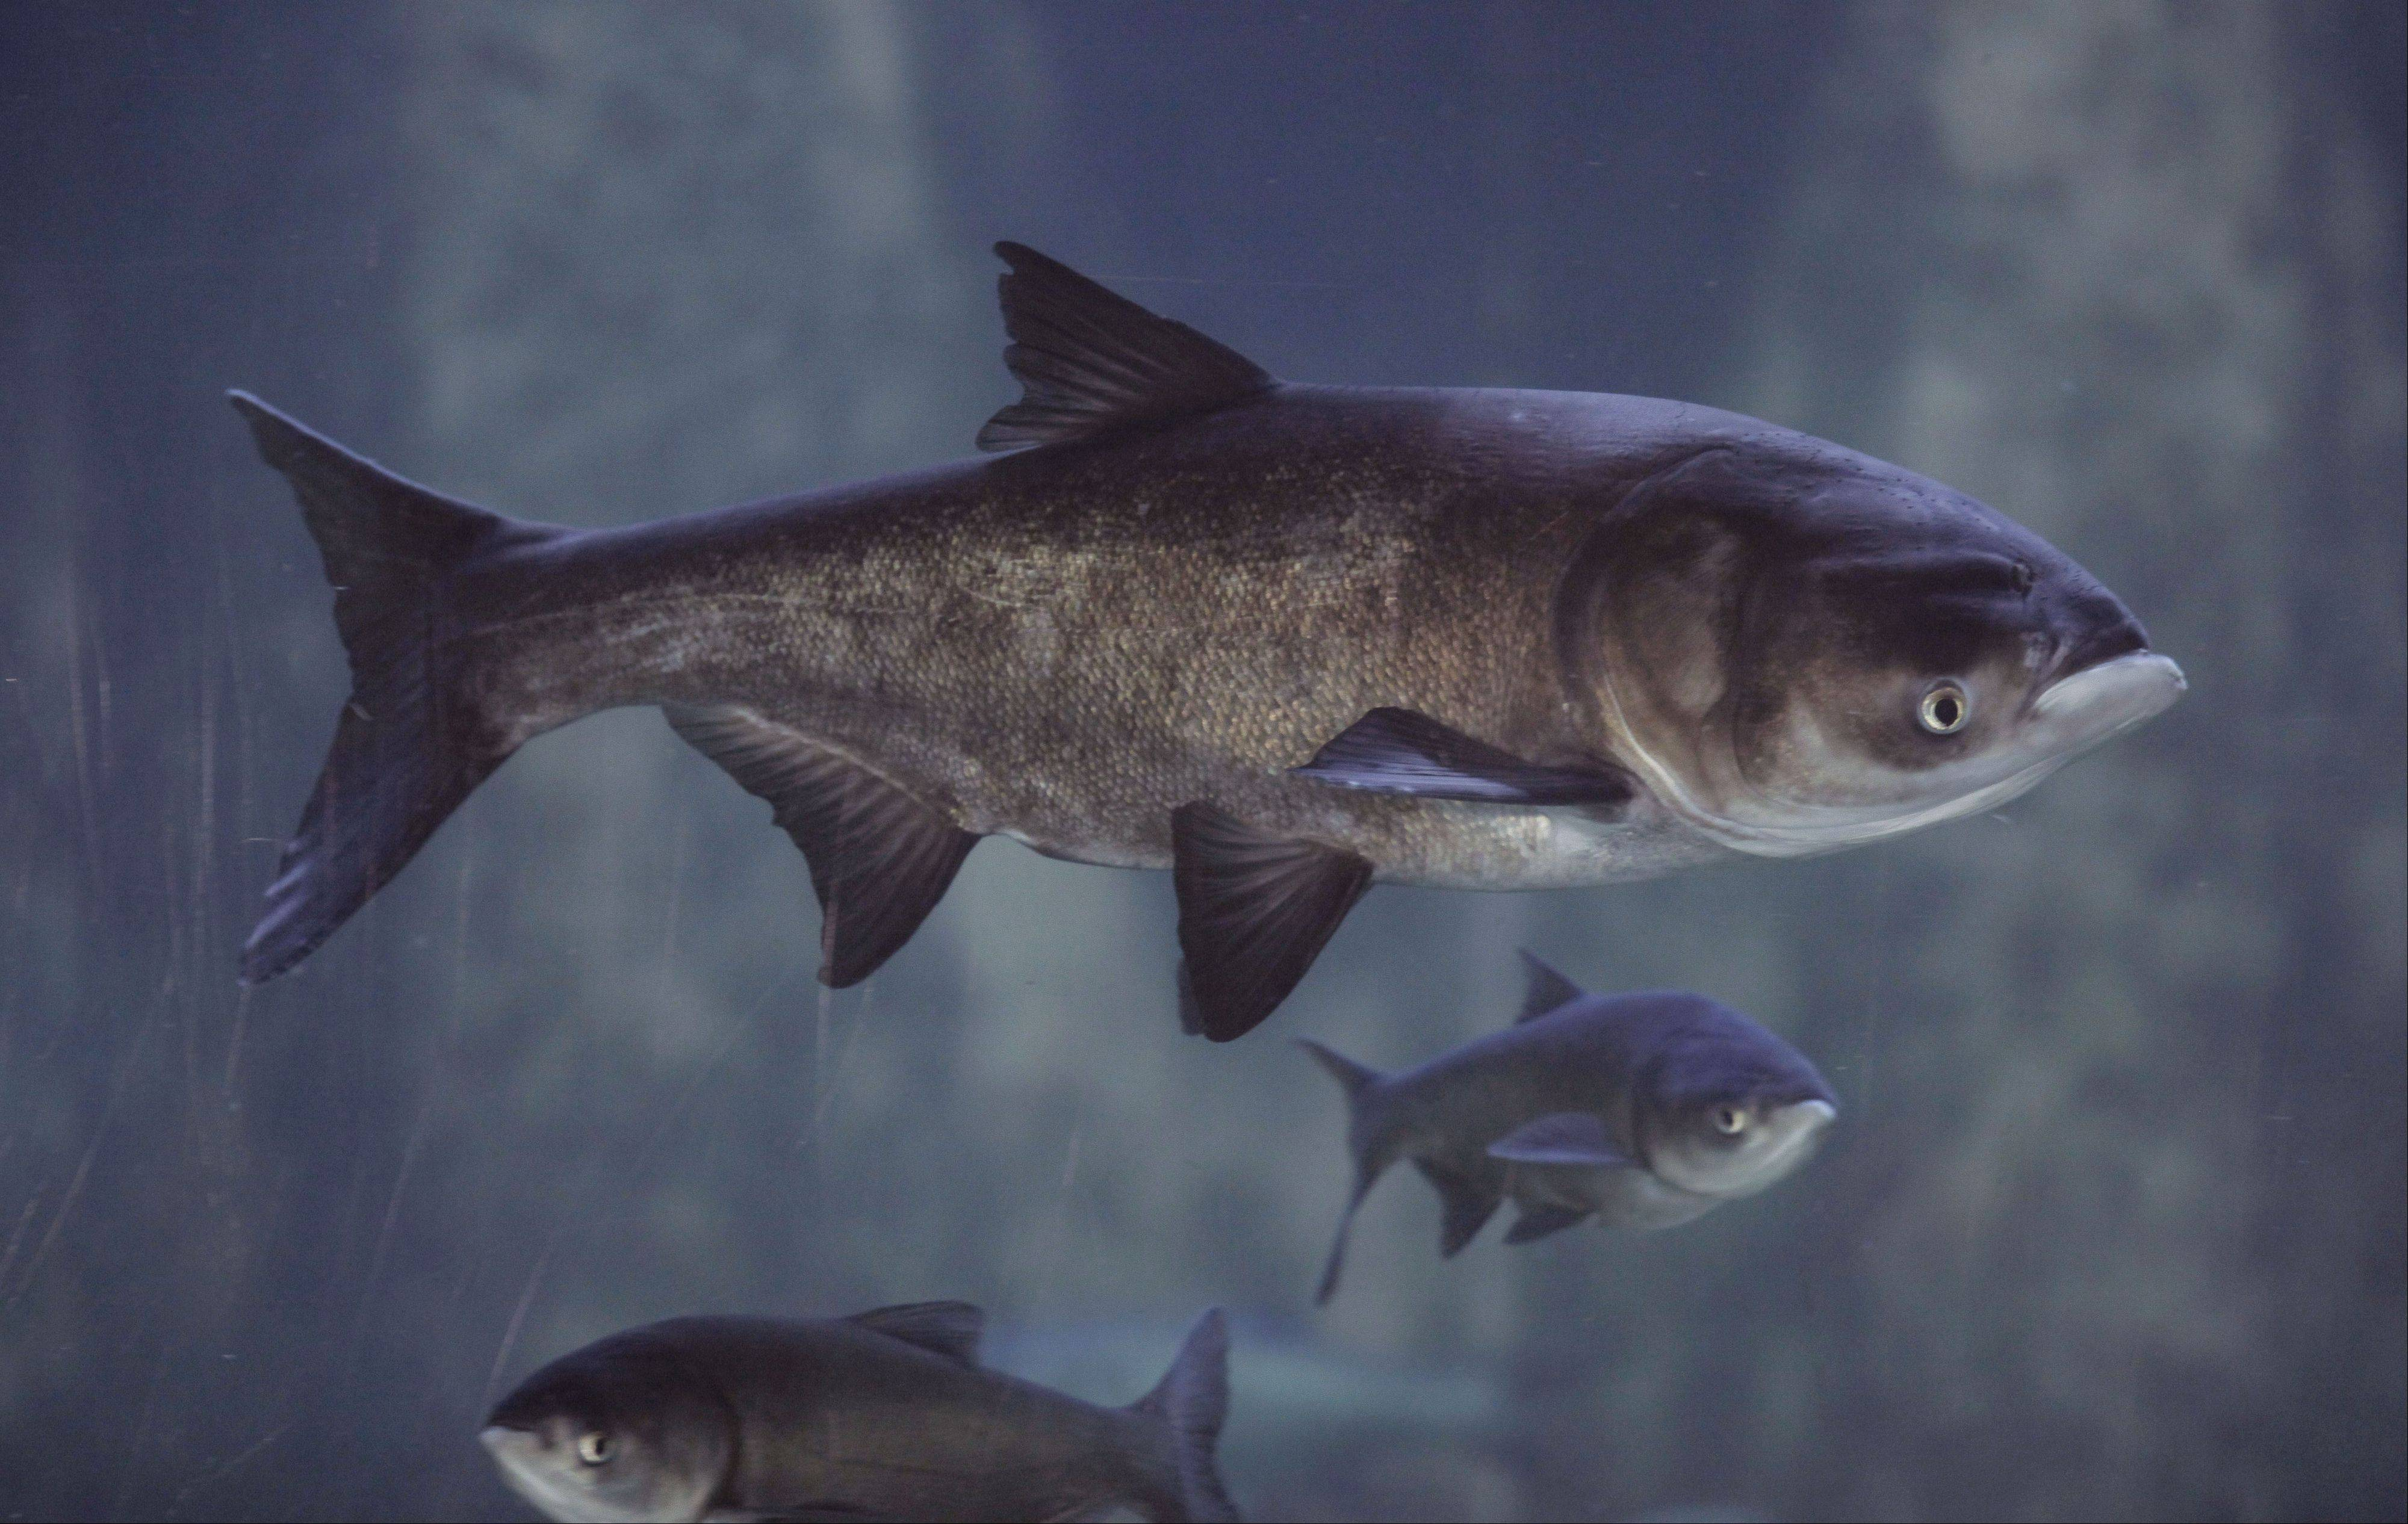 Scientists say if the voracious Asian carp gain a foothold in the Great Lakes, they eventually could out-compete native species and severely damage the region's $7 billion fishing industry.